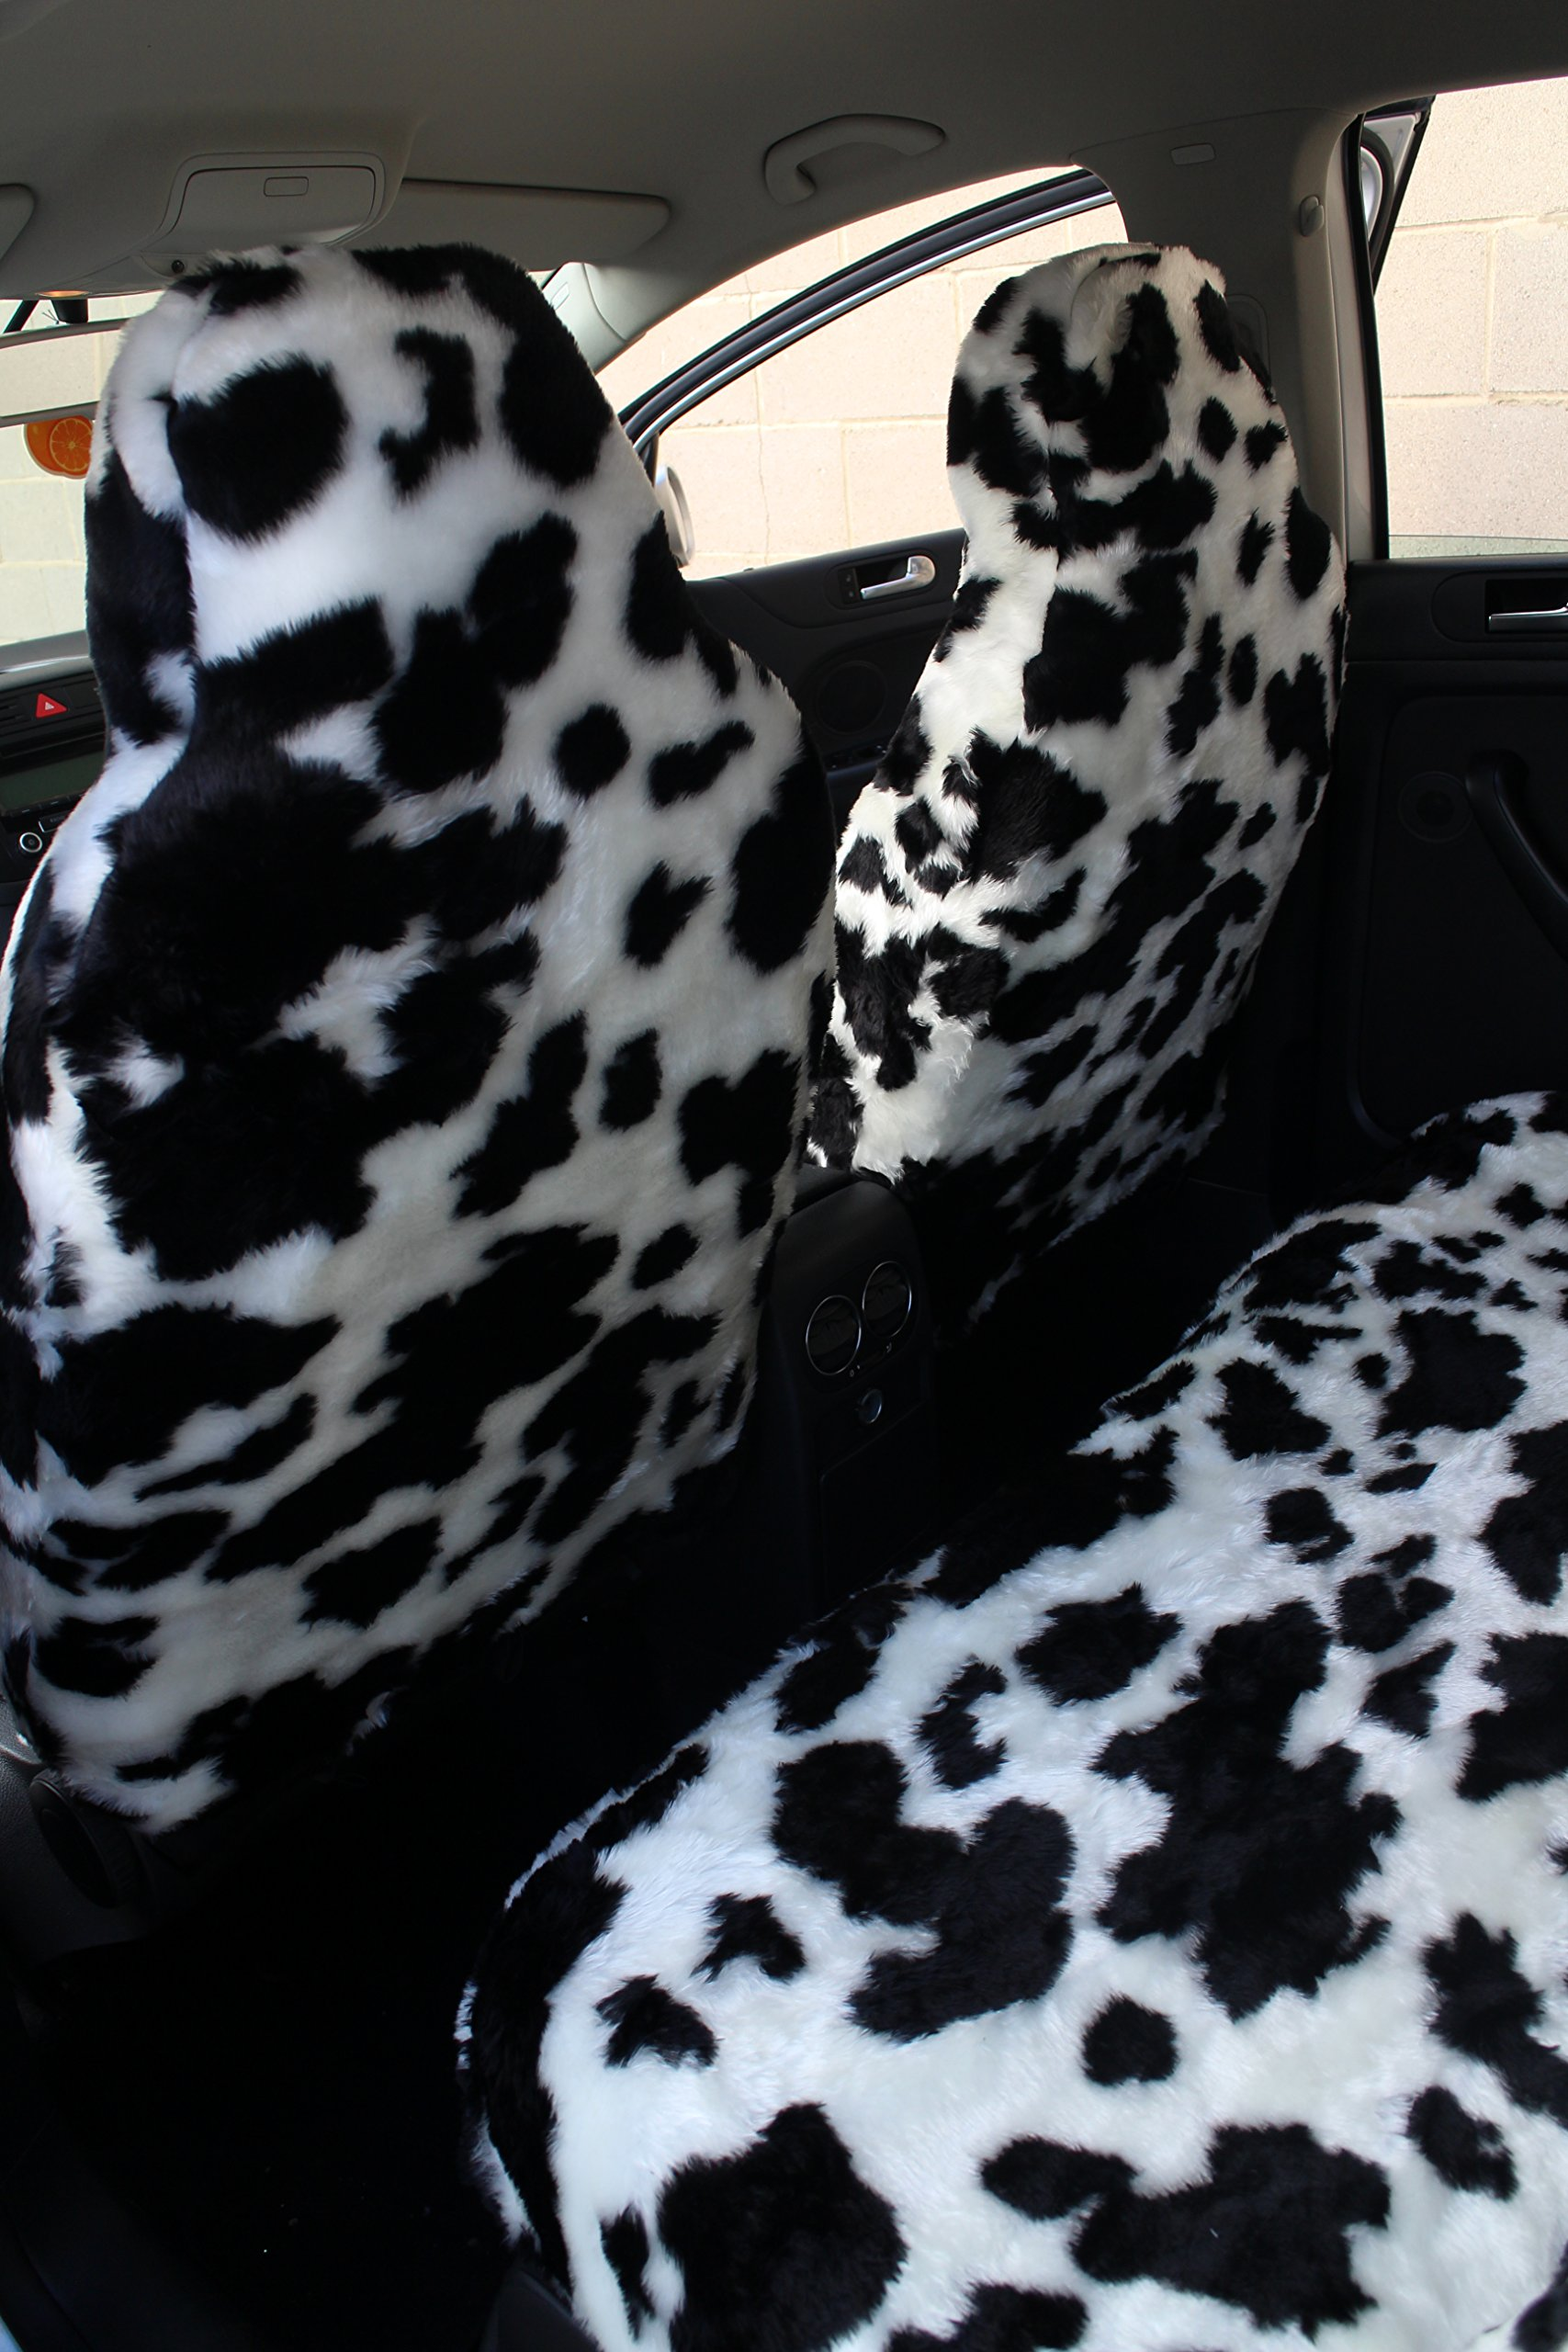 Agroupdream Car Seat Cushion Comfortable Auto Full Seat Cover Summer Winter for Women Men Family Cow Print White and Black